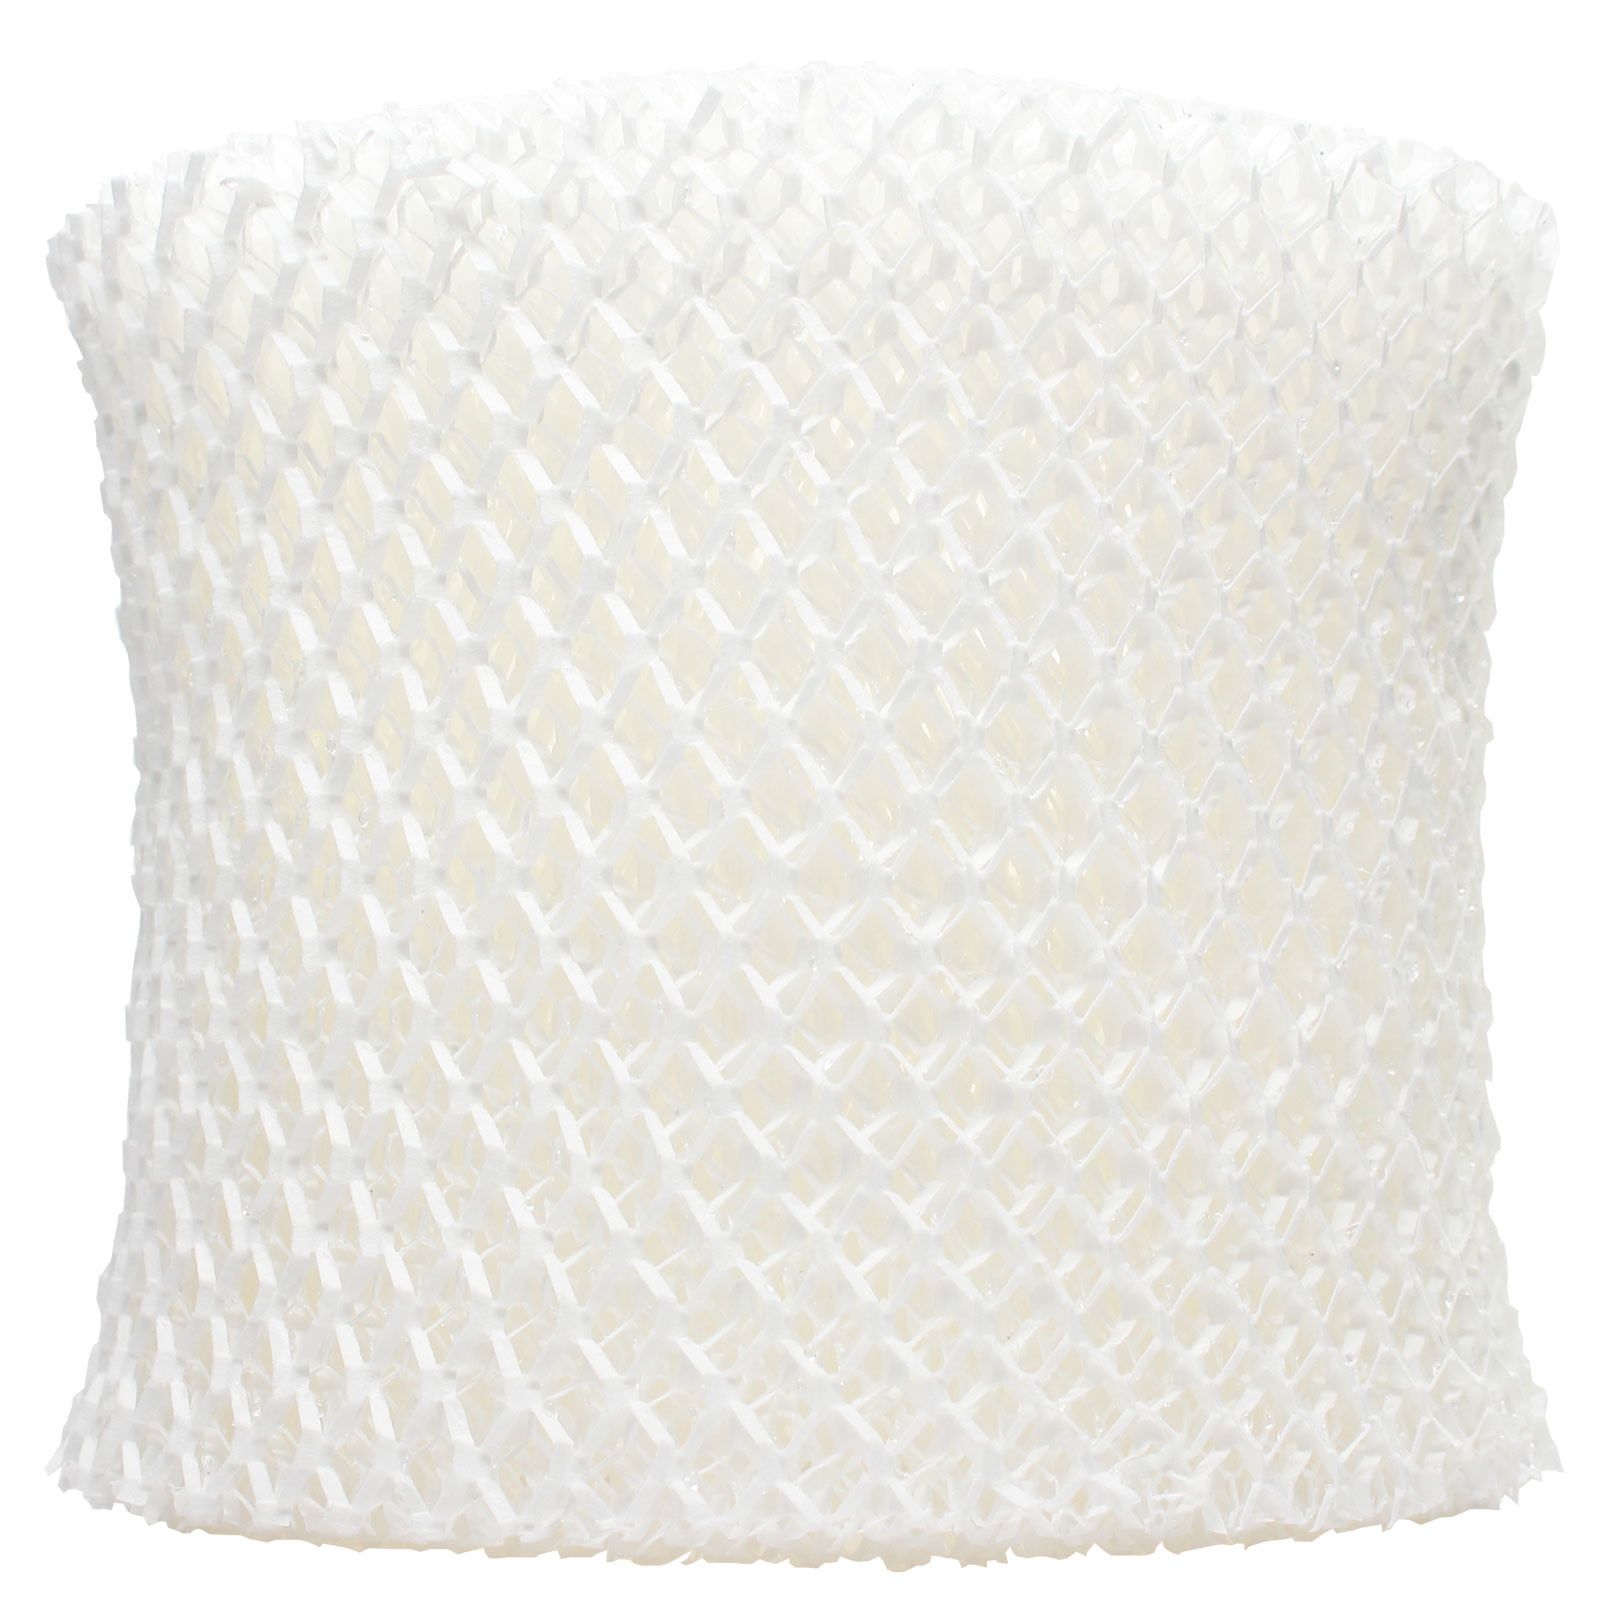 Replacement Holmes HM1746 Humidifier Filter - Compatible Holmes HWF64, Type B Air Filter